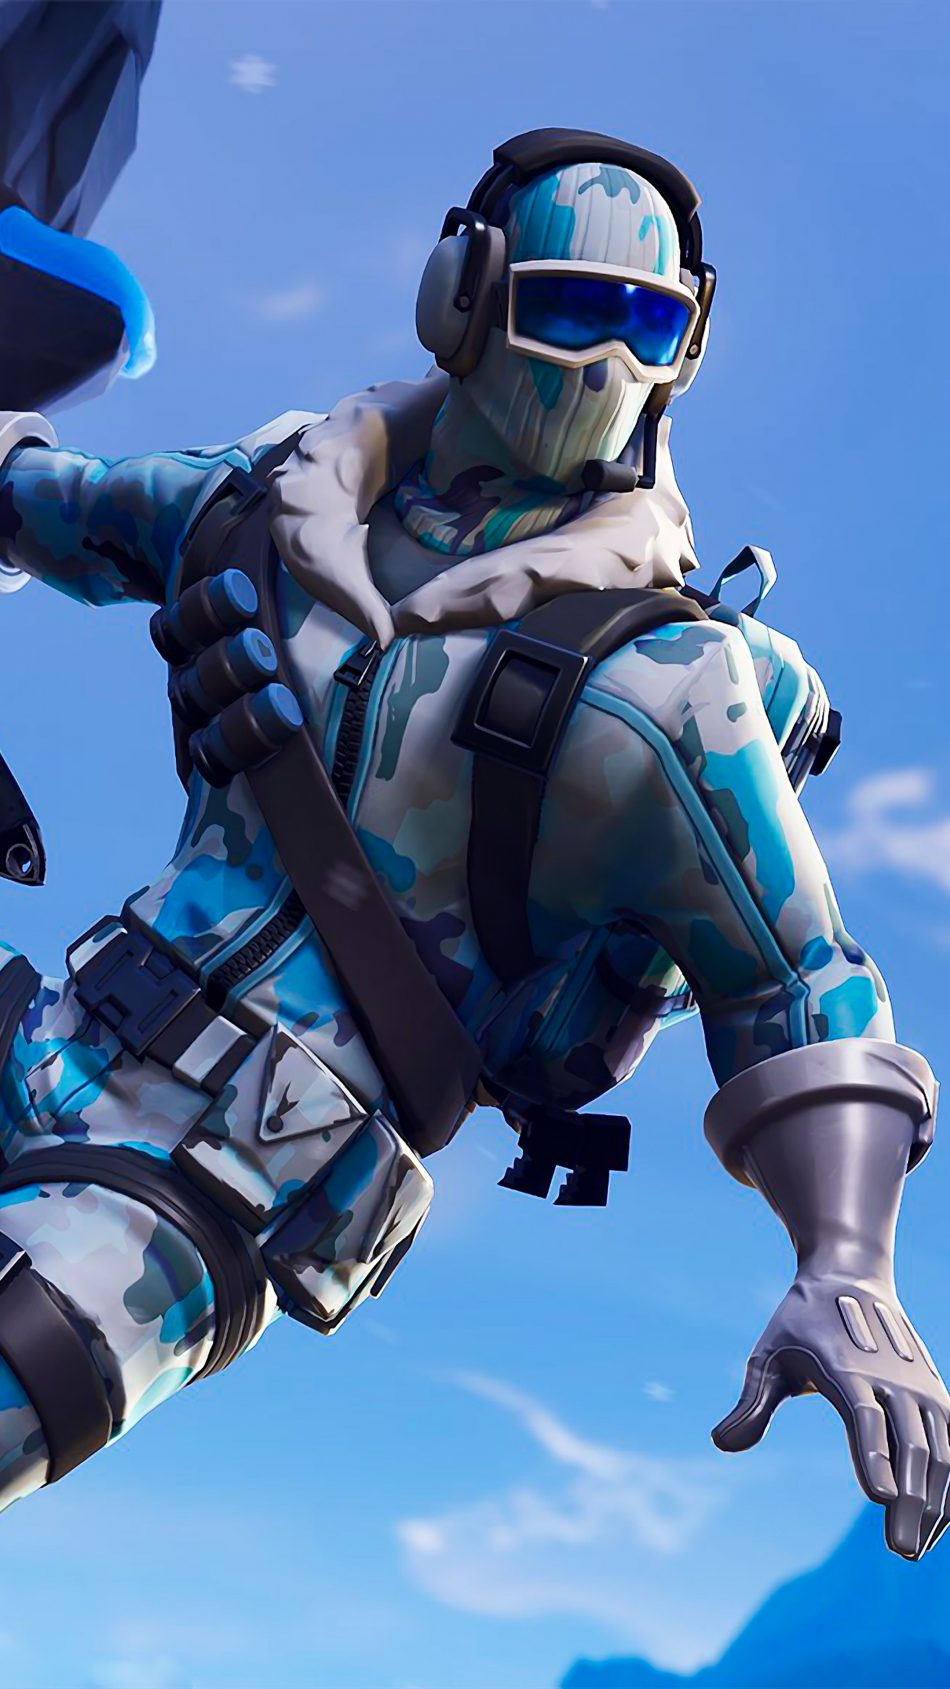 Fortnite Deep Freeze Bundle 4K Ultra HD Mobile Wallpaper